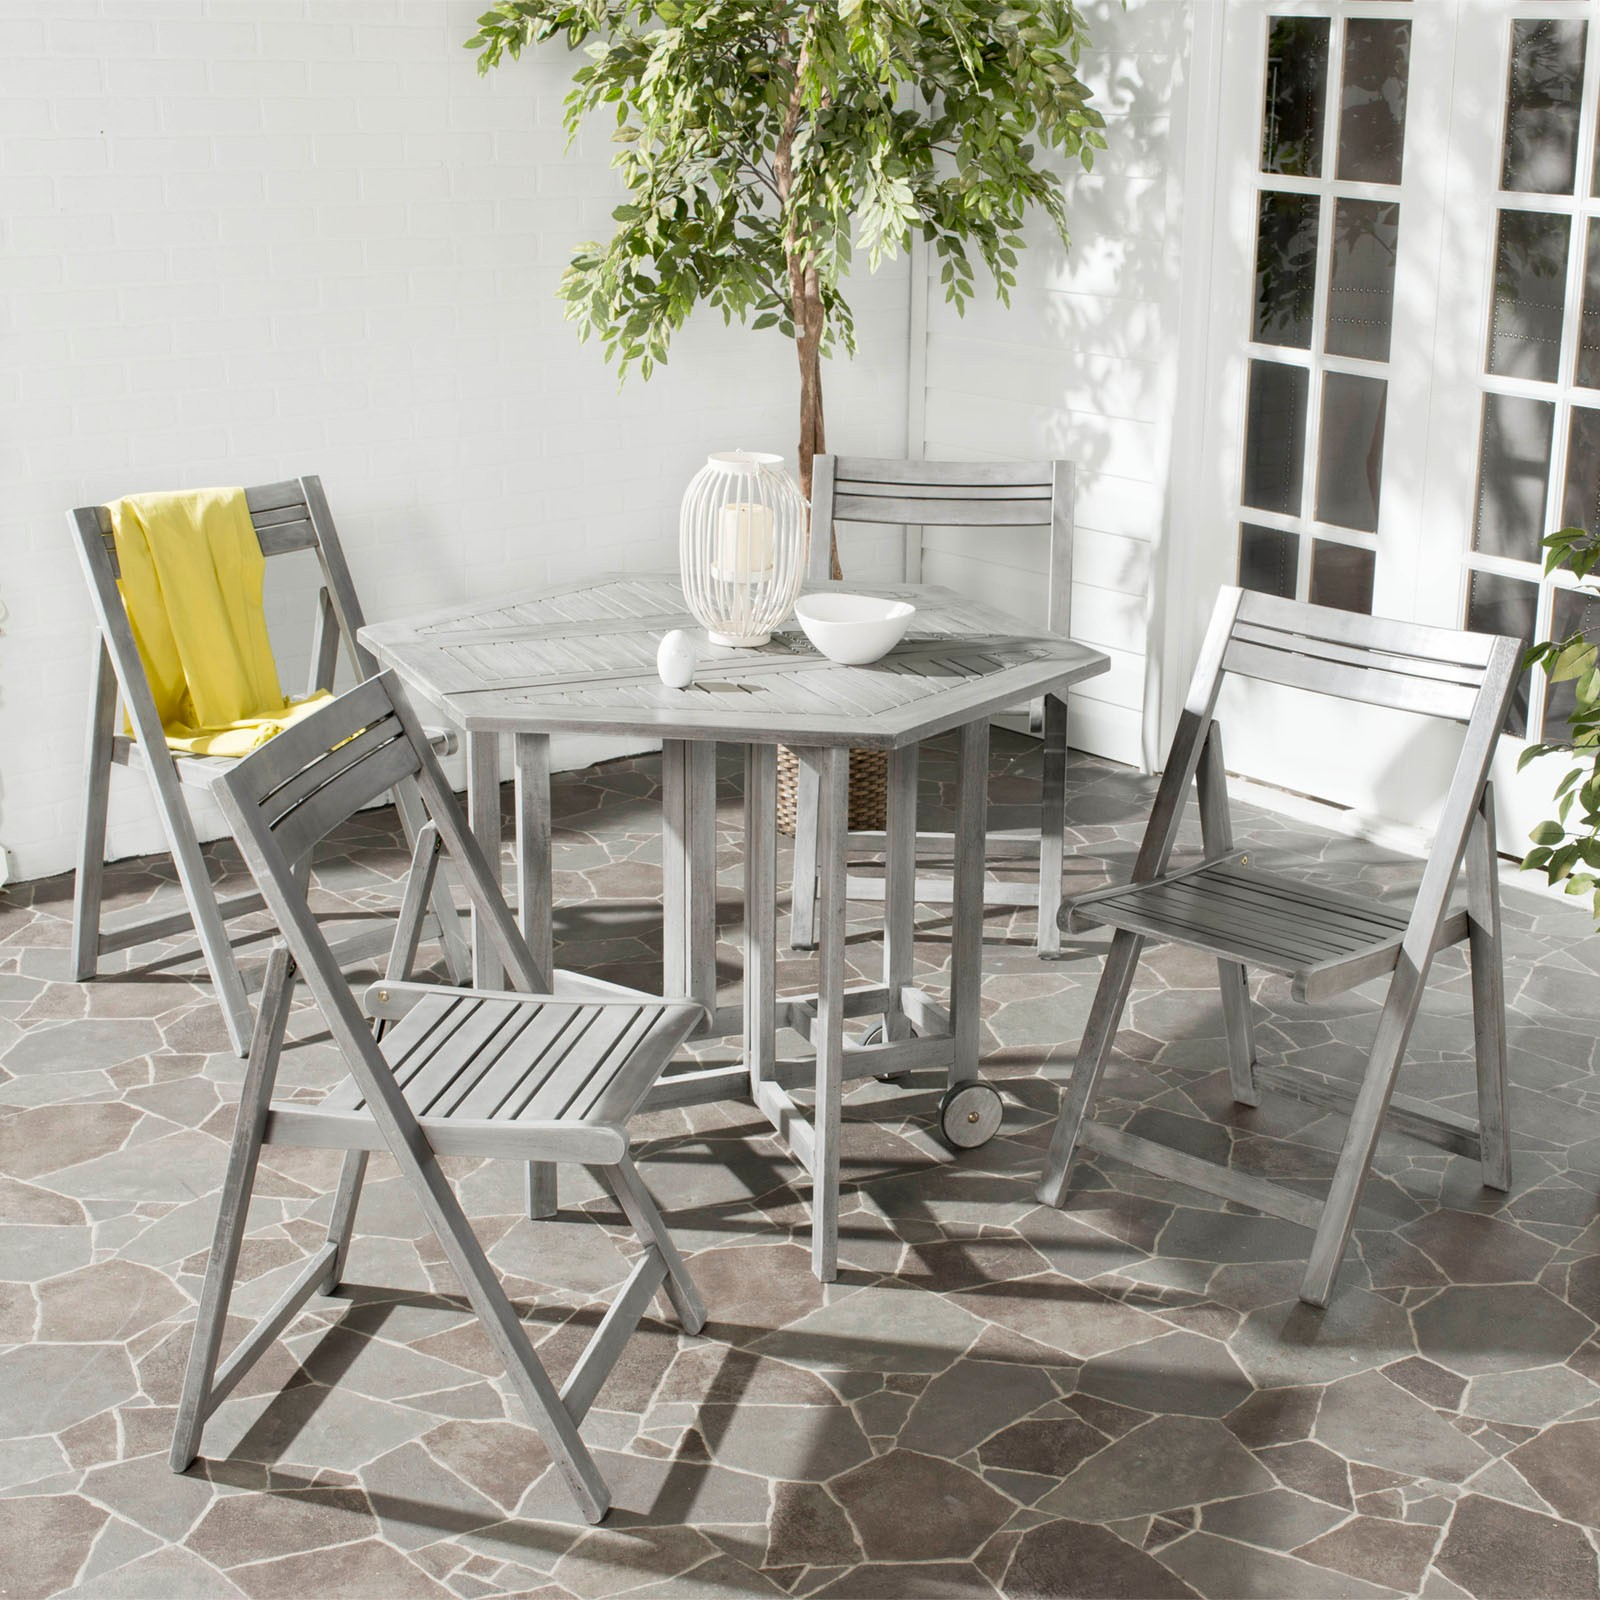 Outdoor Collapsible Dining Table Set Zola